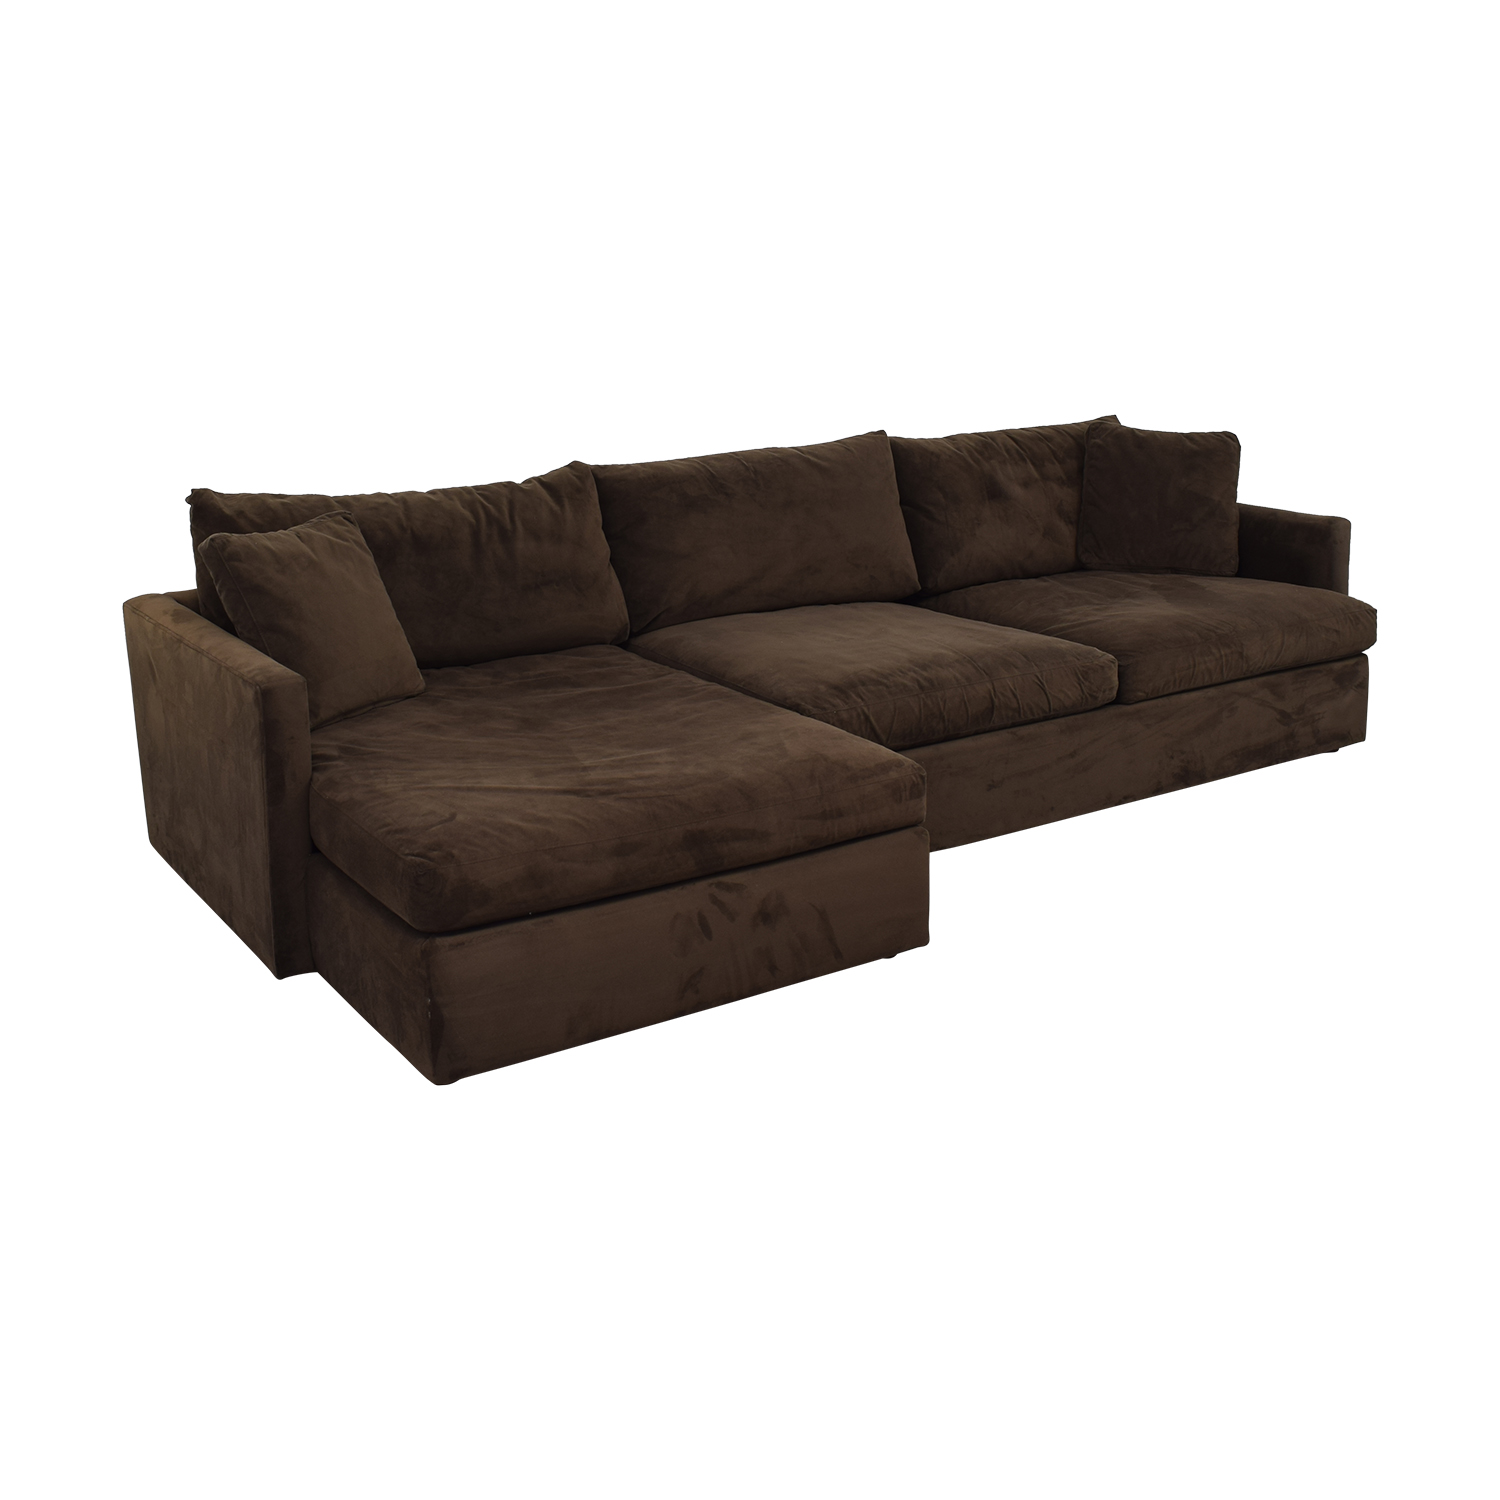 shop Crate & Barrel Crate & Barrel Sofa Sectional with Chaise online